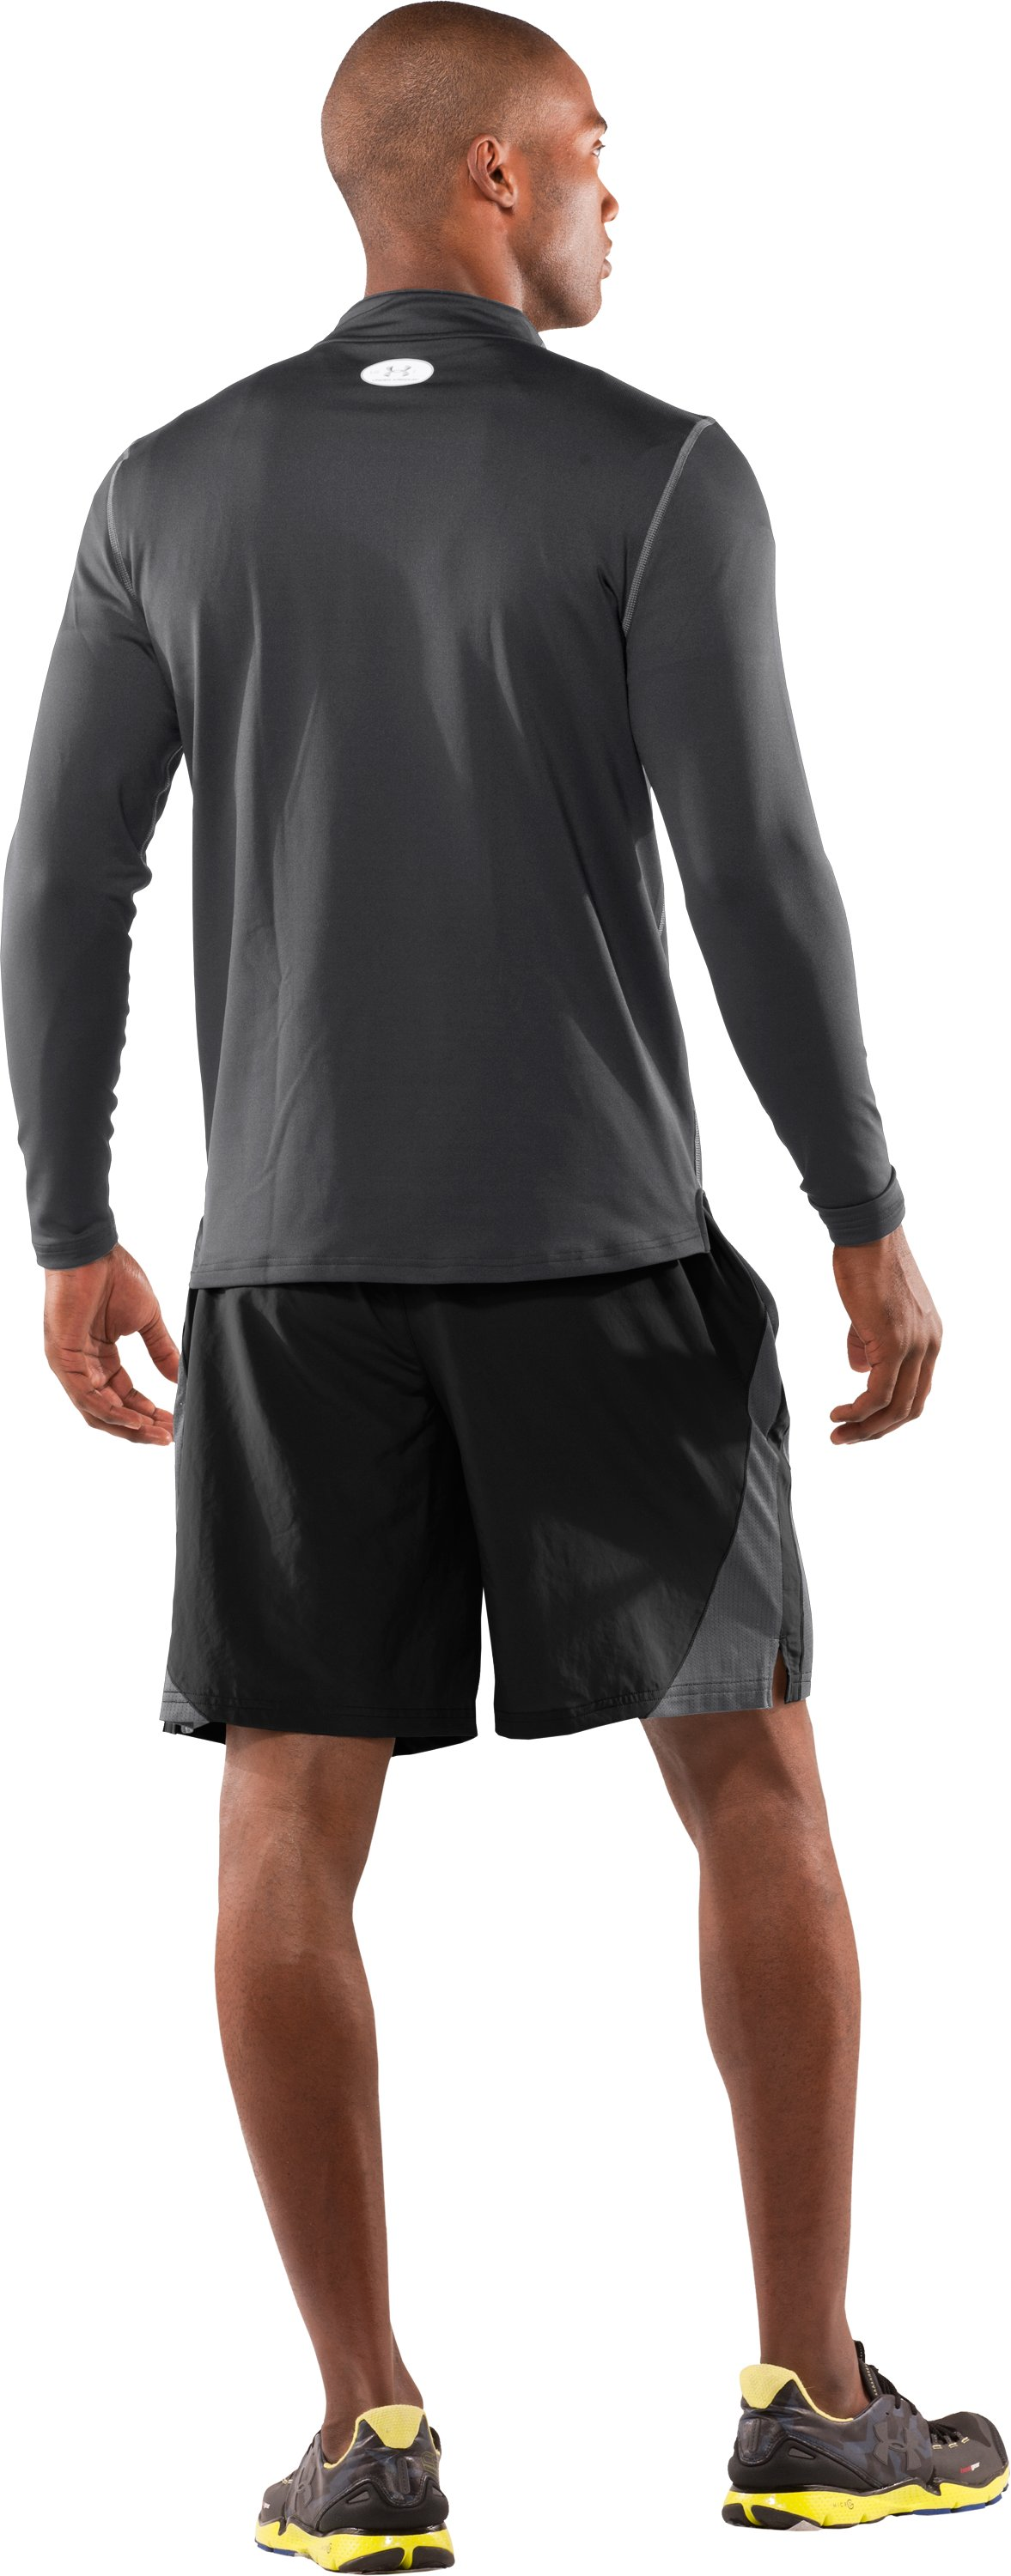 "Men's Transit 9"" Running Shorts, Black , Back"